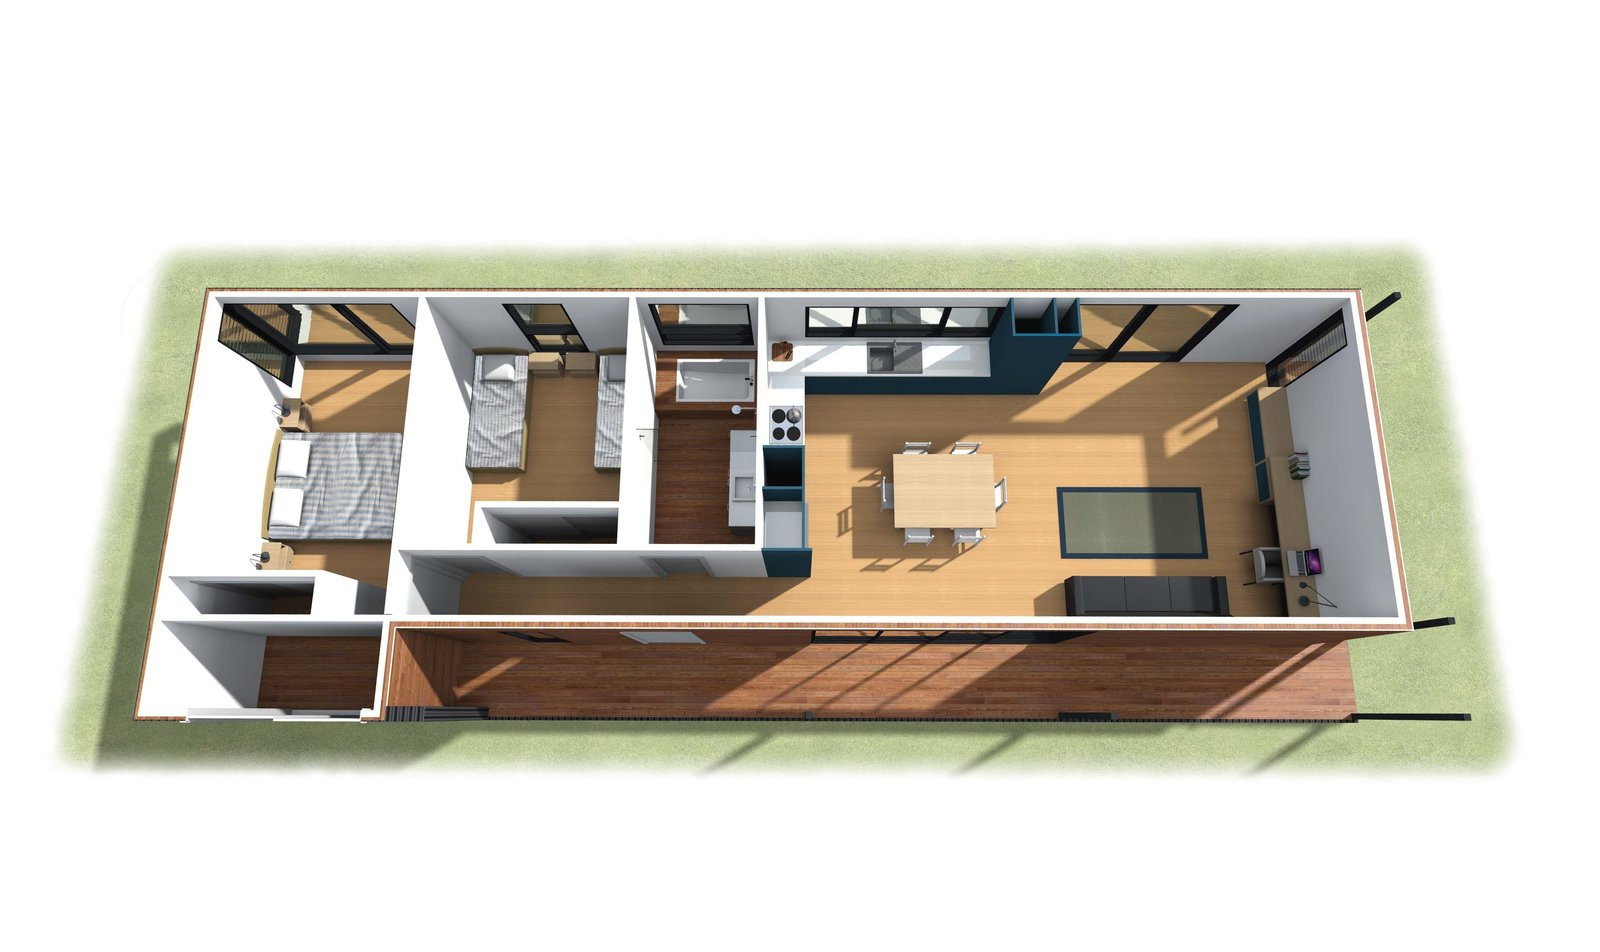 Avalon House Floor Plan  Photo 4 of 4 in A Dramatic Cliffside Prefab Steps from the Beach in Australia